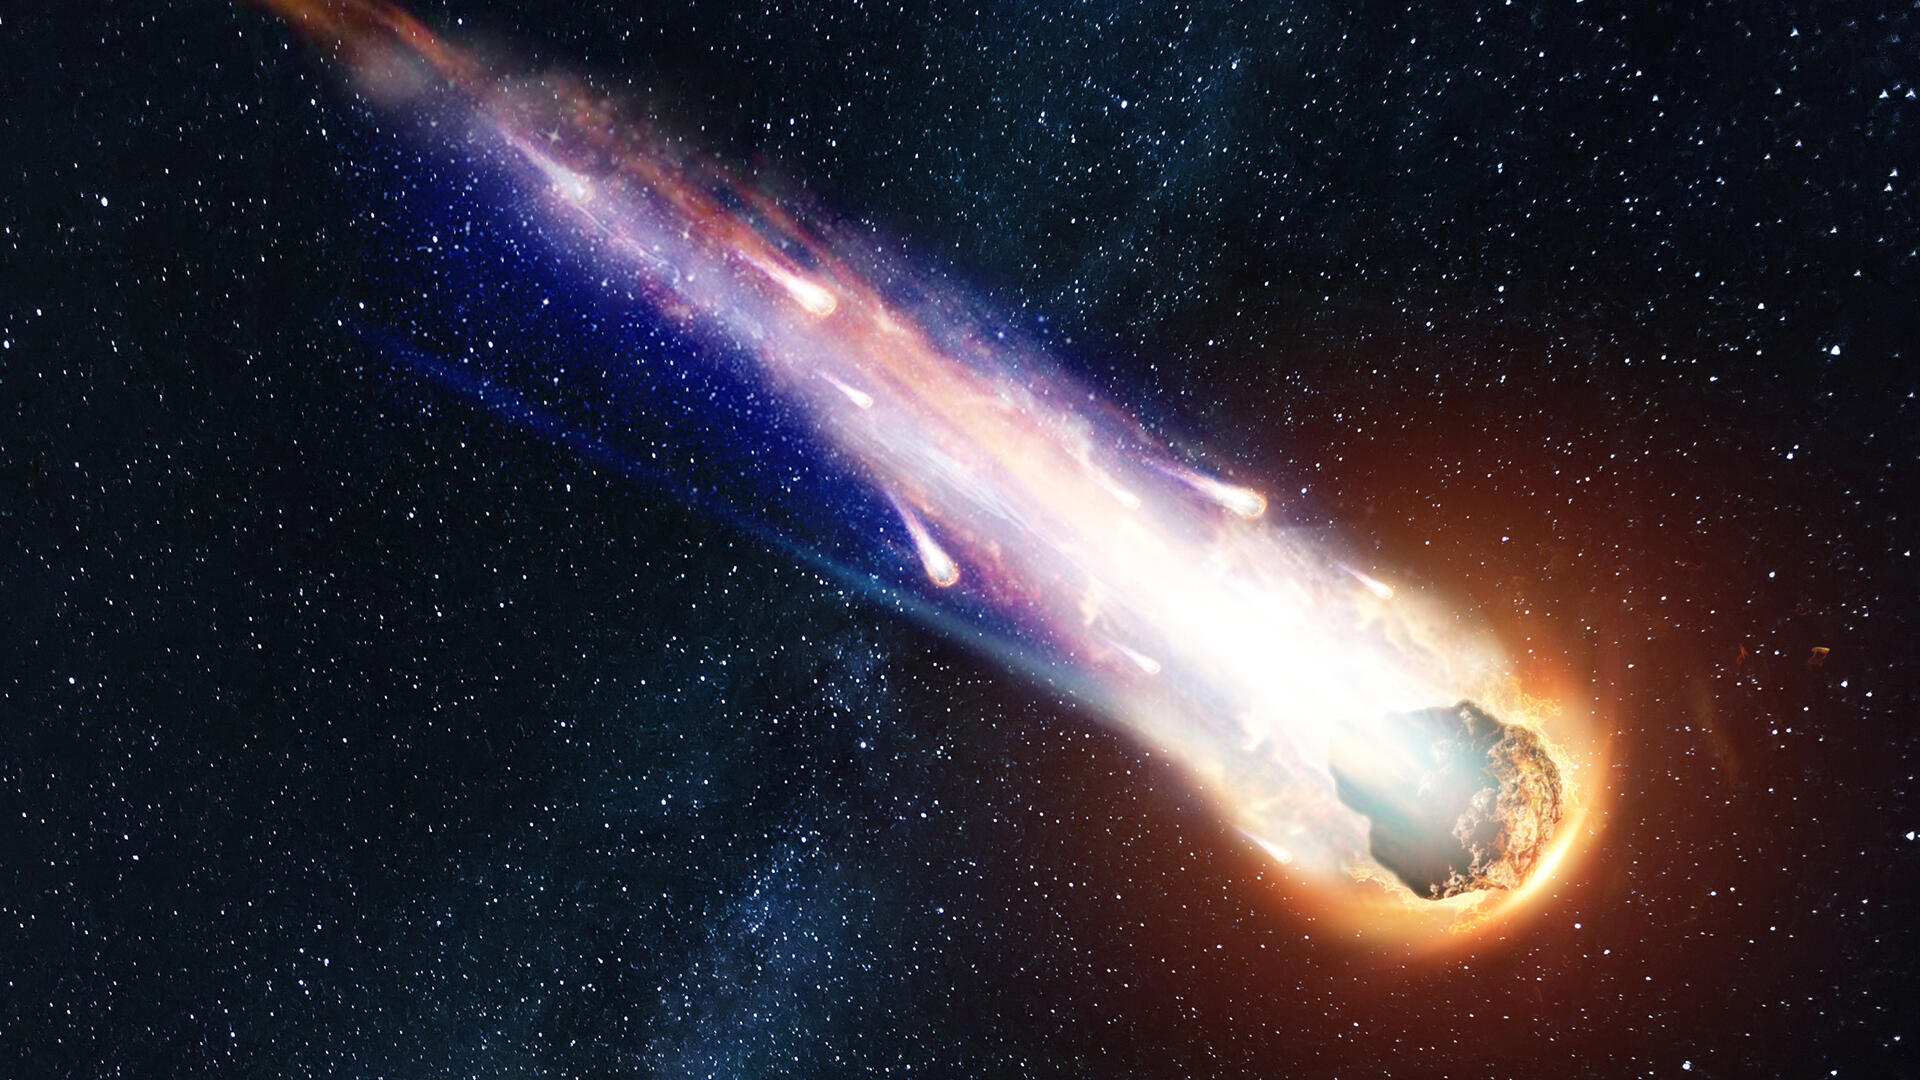 Illustration of a meteor streaking through space